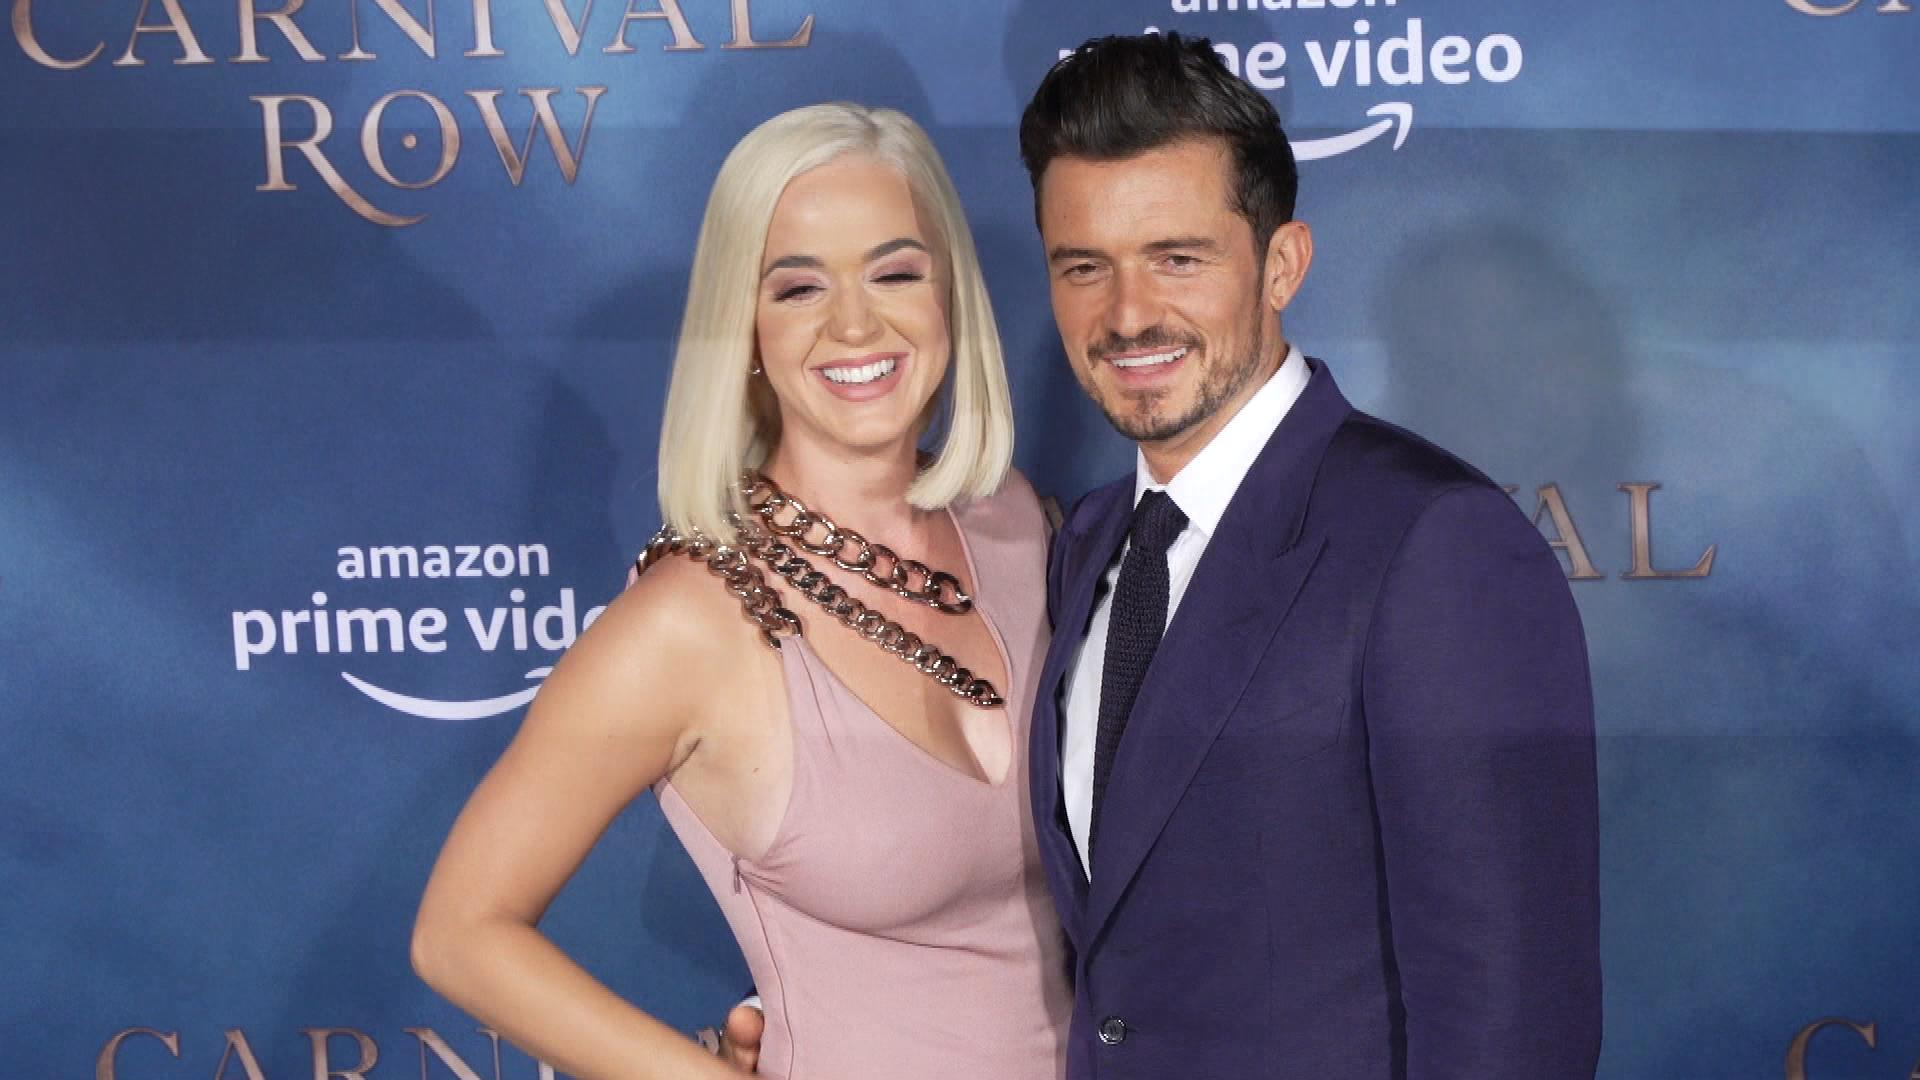 Orlando Bloom Reveals the 'Secret' Sweet Thing He and Katy Perry Love to Do Together (Exclusive)